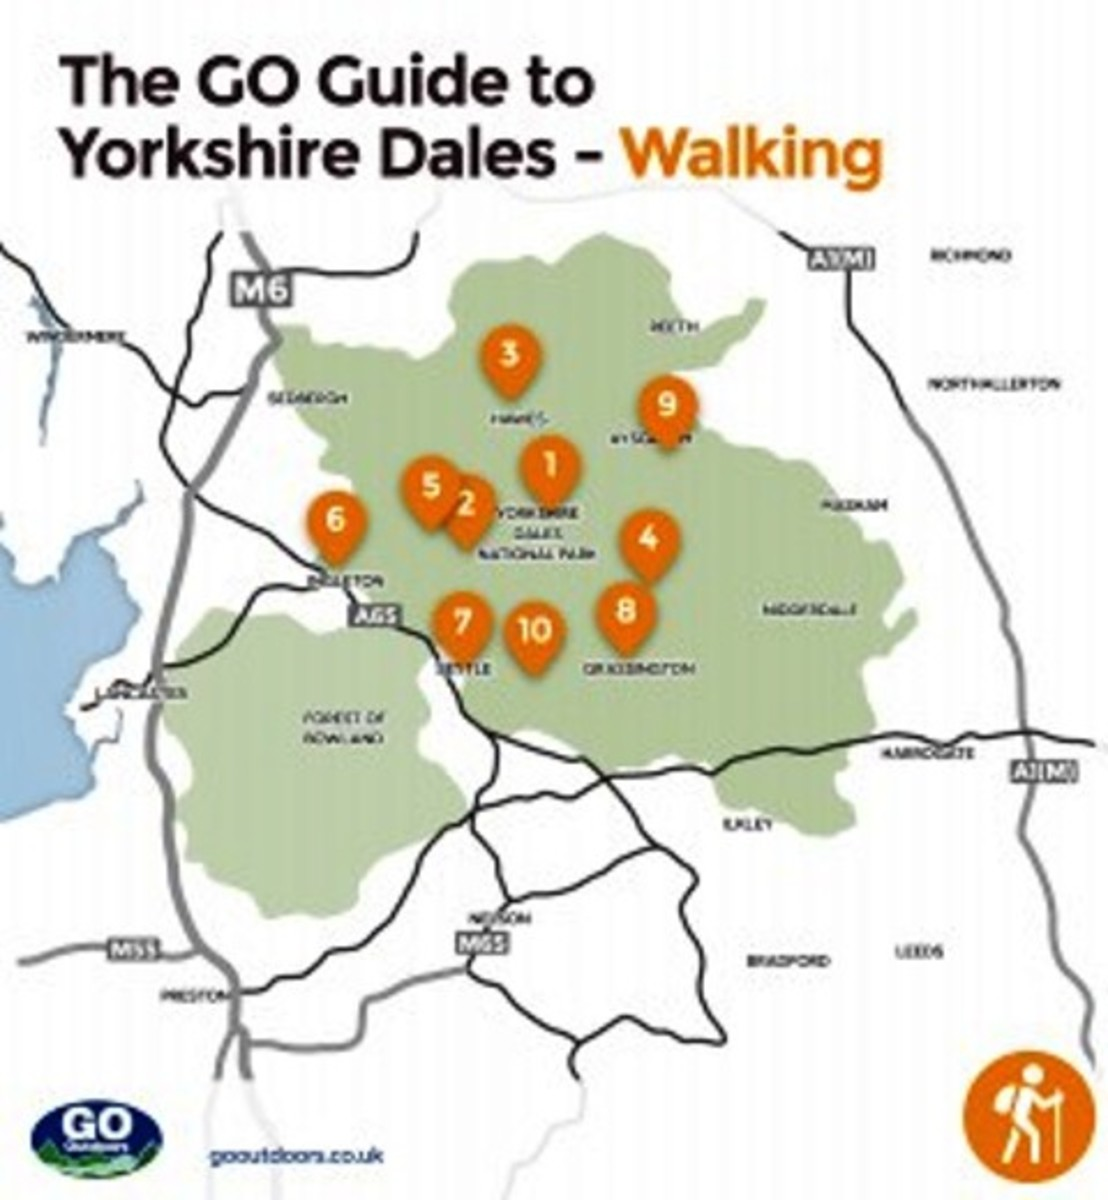 A handy guide to keep in your backpack for those uncertain moments when you need to make choices - refer to the web site for a key to the walk numbers